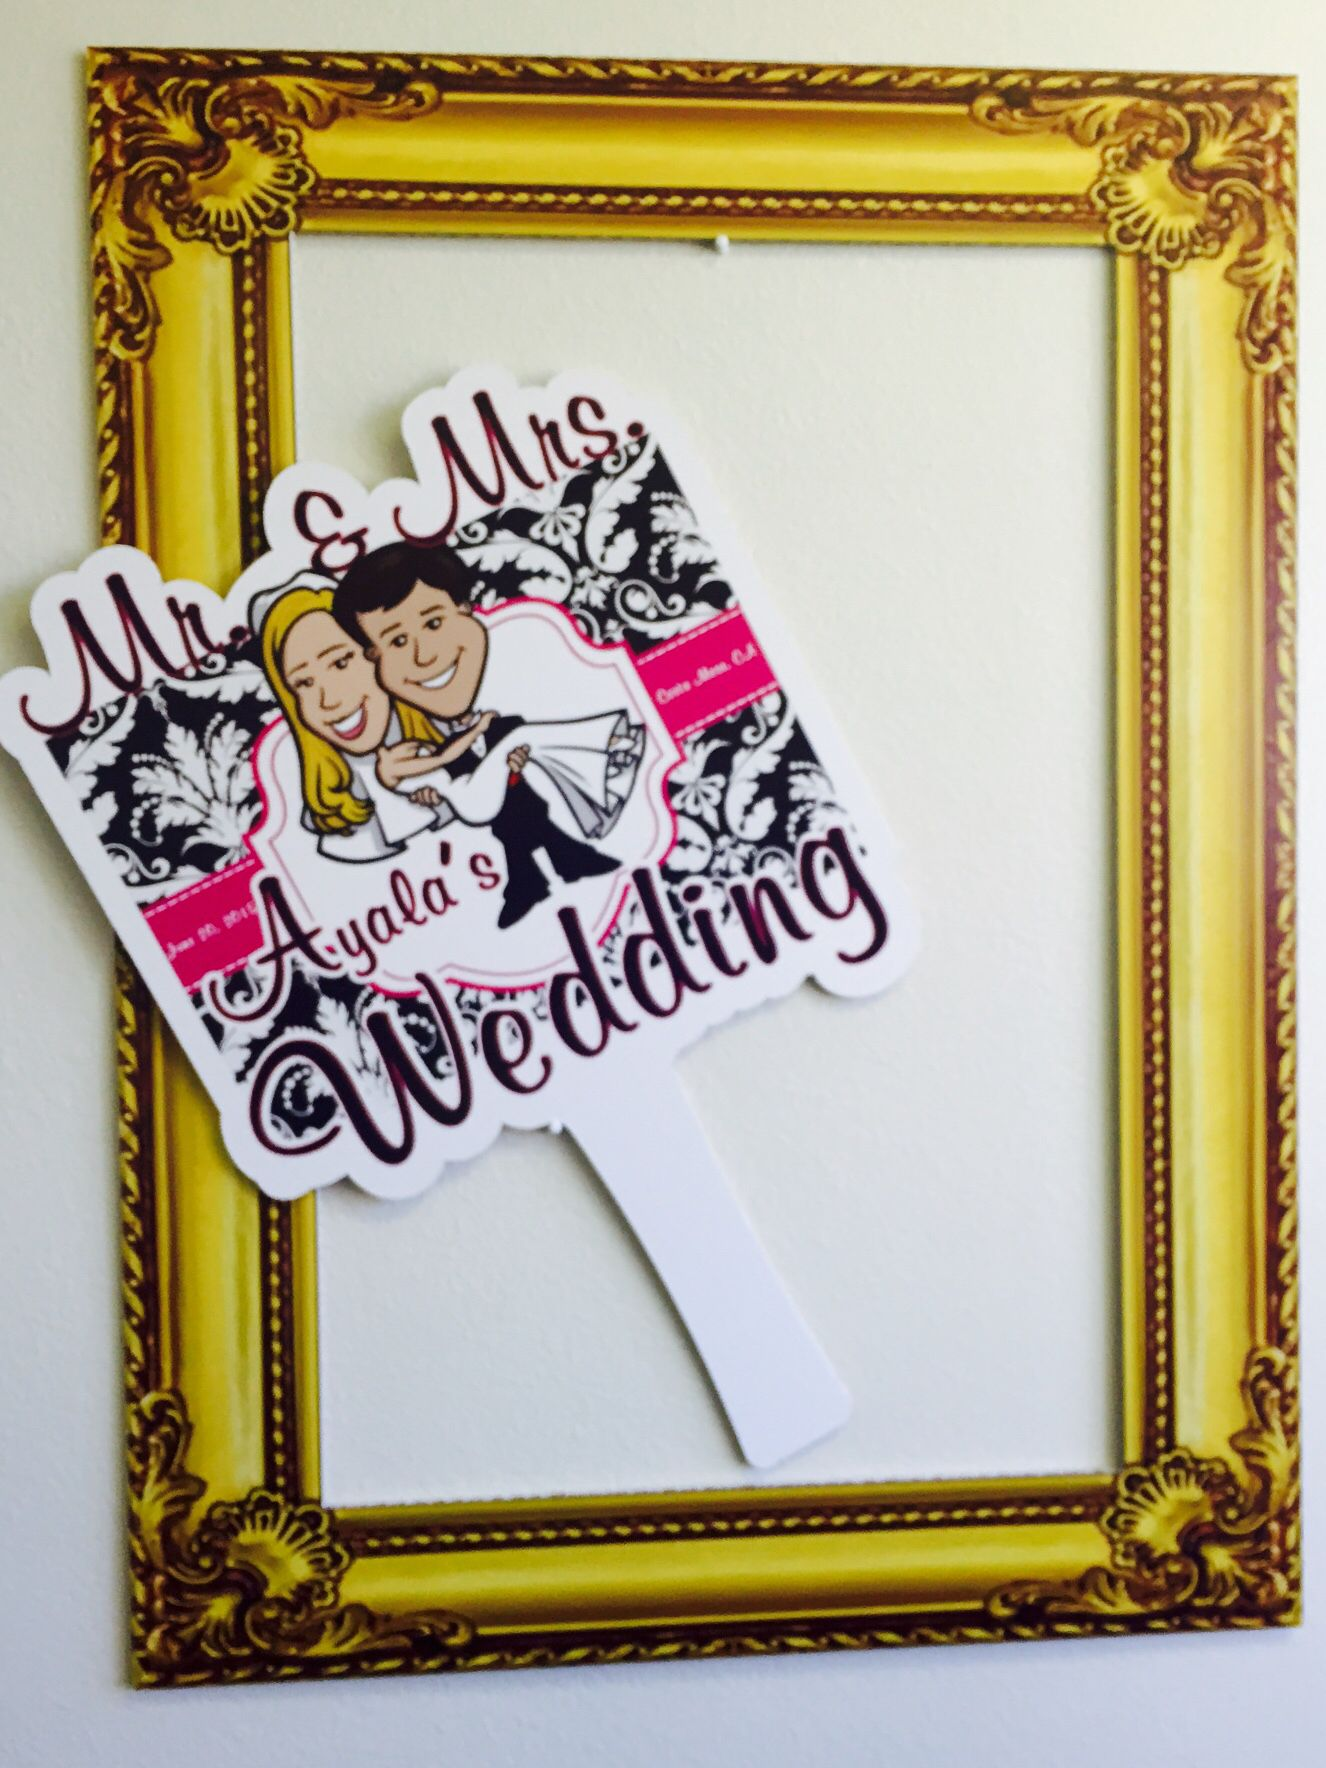 Wedding Photo Frames and photo props. #weddings #weddingprops #weddingfun #weddingreception #weddingparty #partyfavors #photobooth #frames